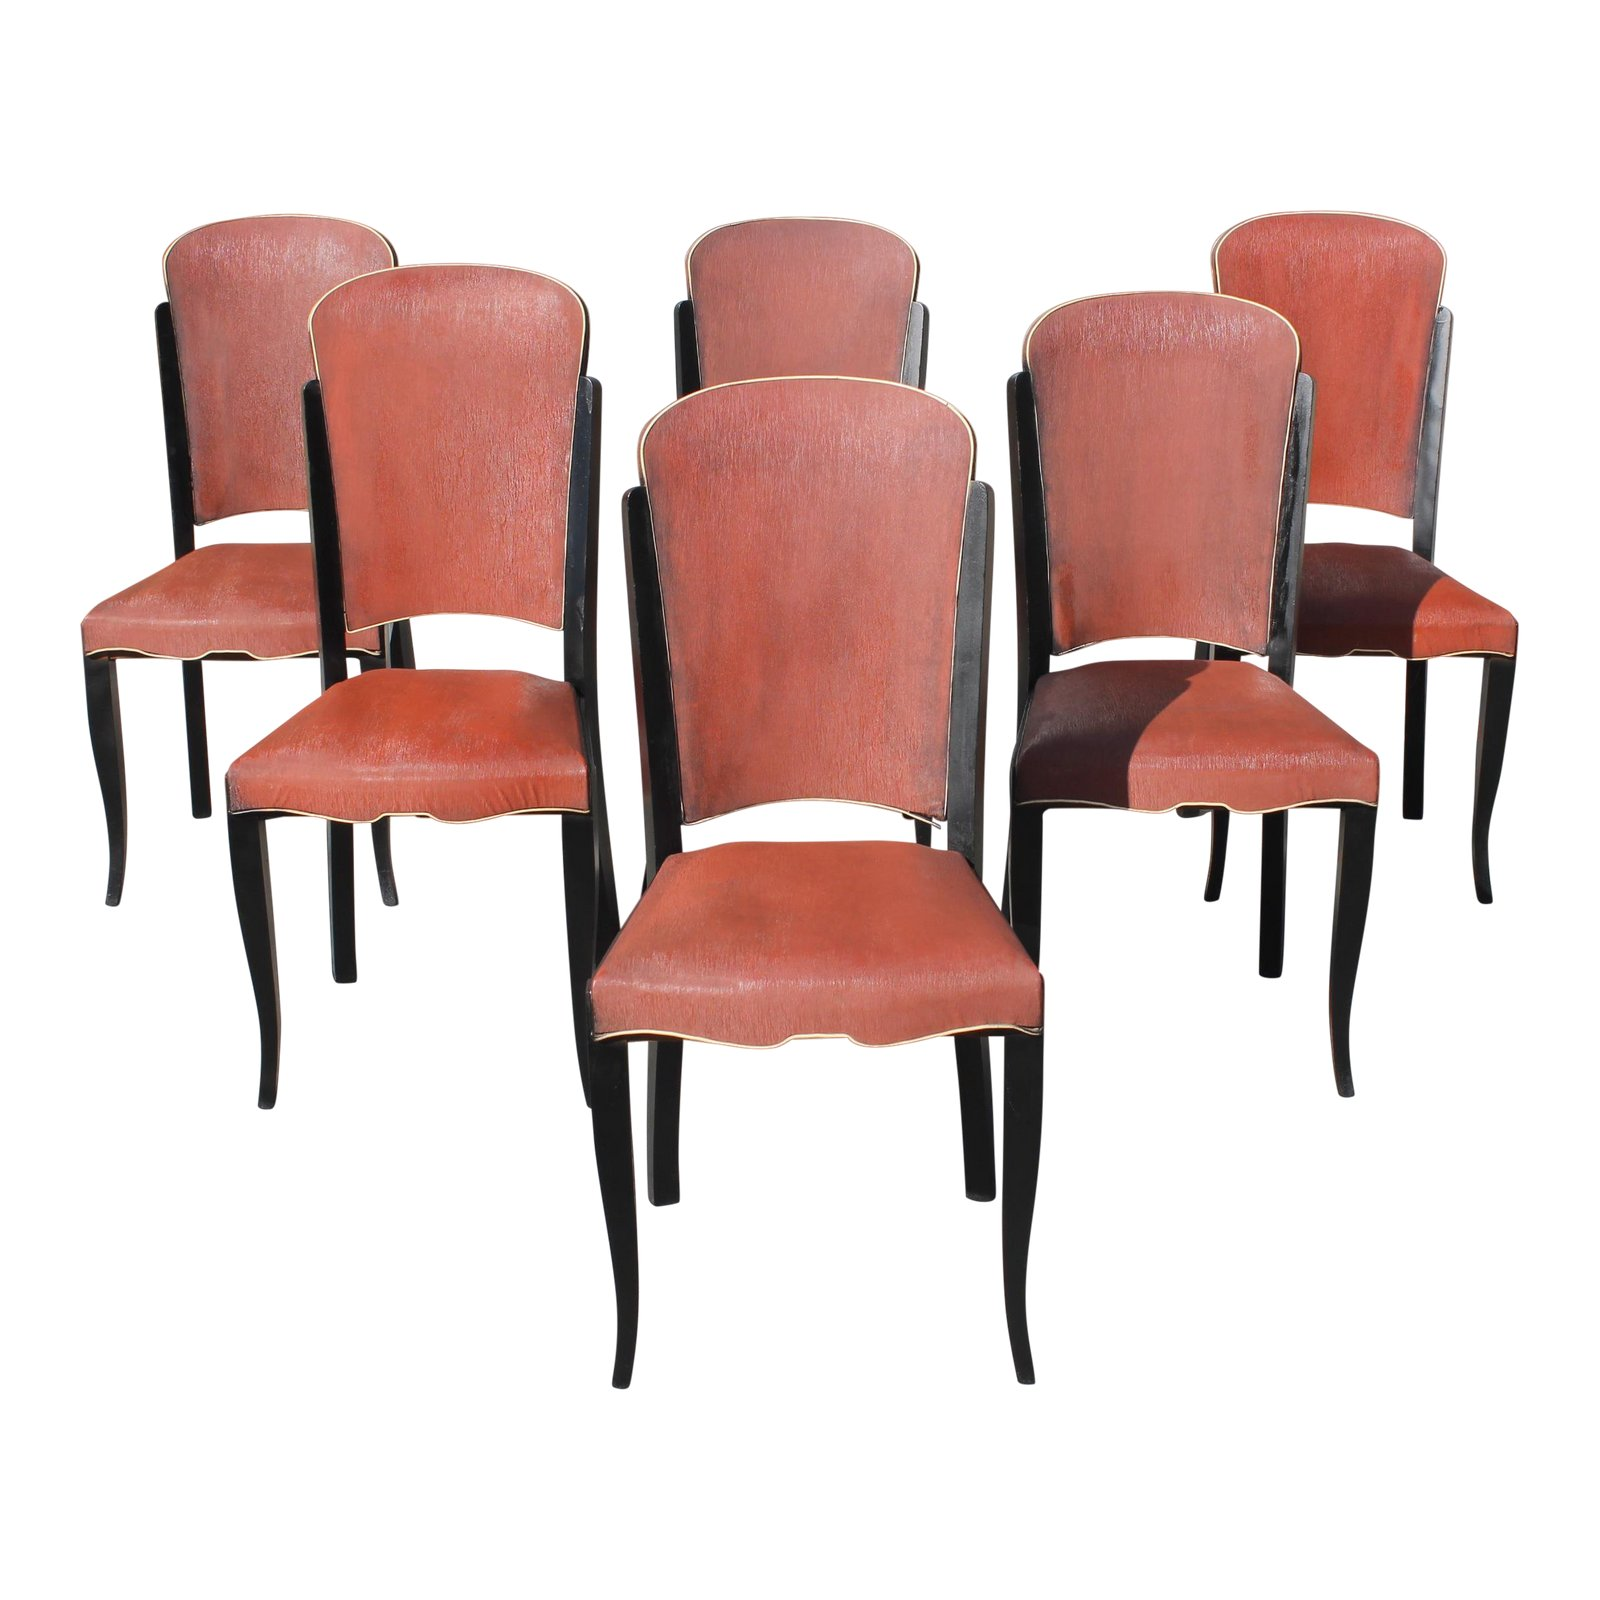 Art Deco Dining Chairs 1940s Vintage French Art Deco Solid Ebony Dining Chairs Set Of 6